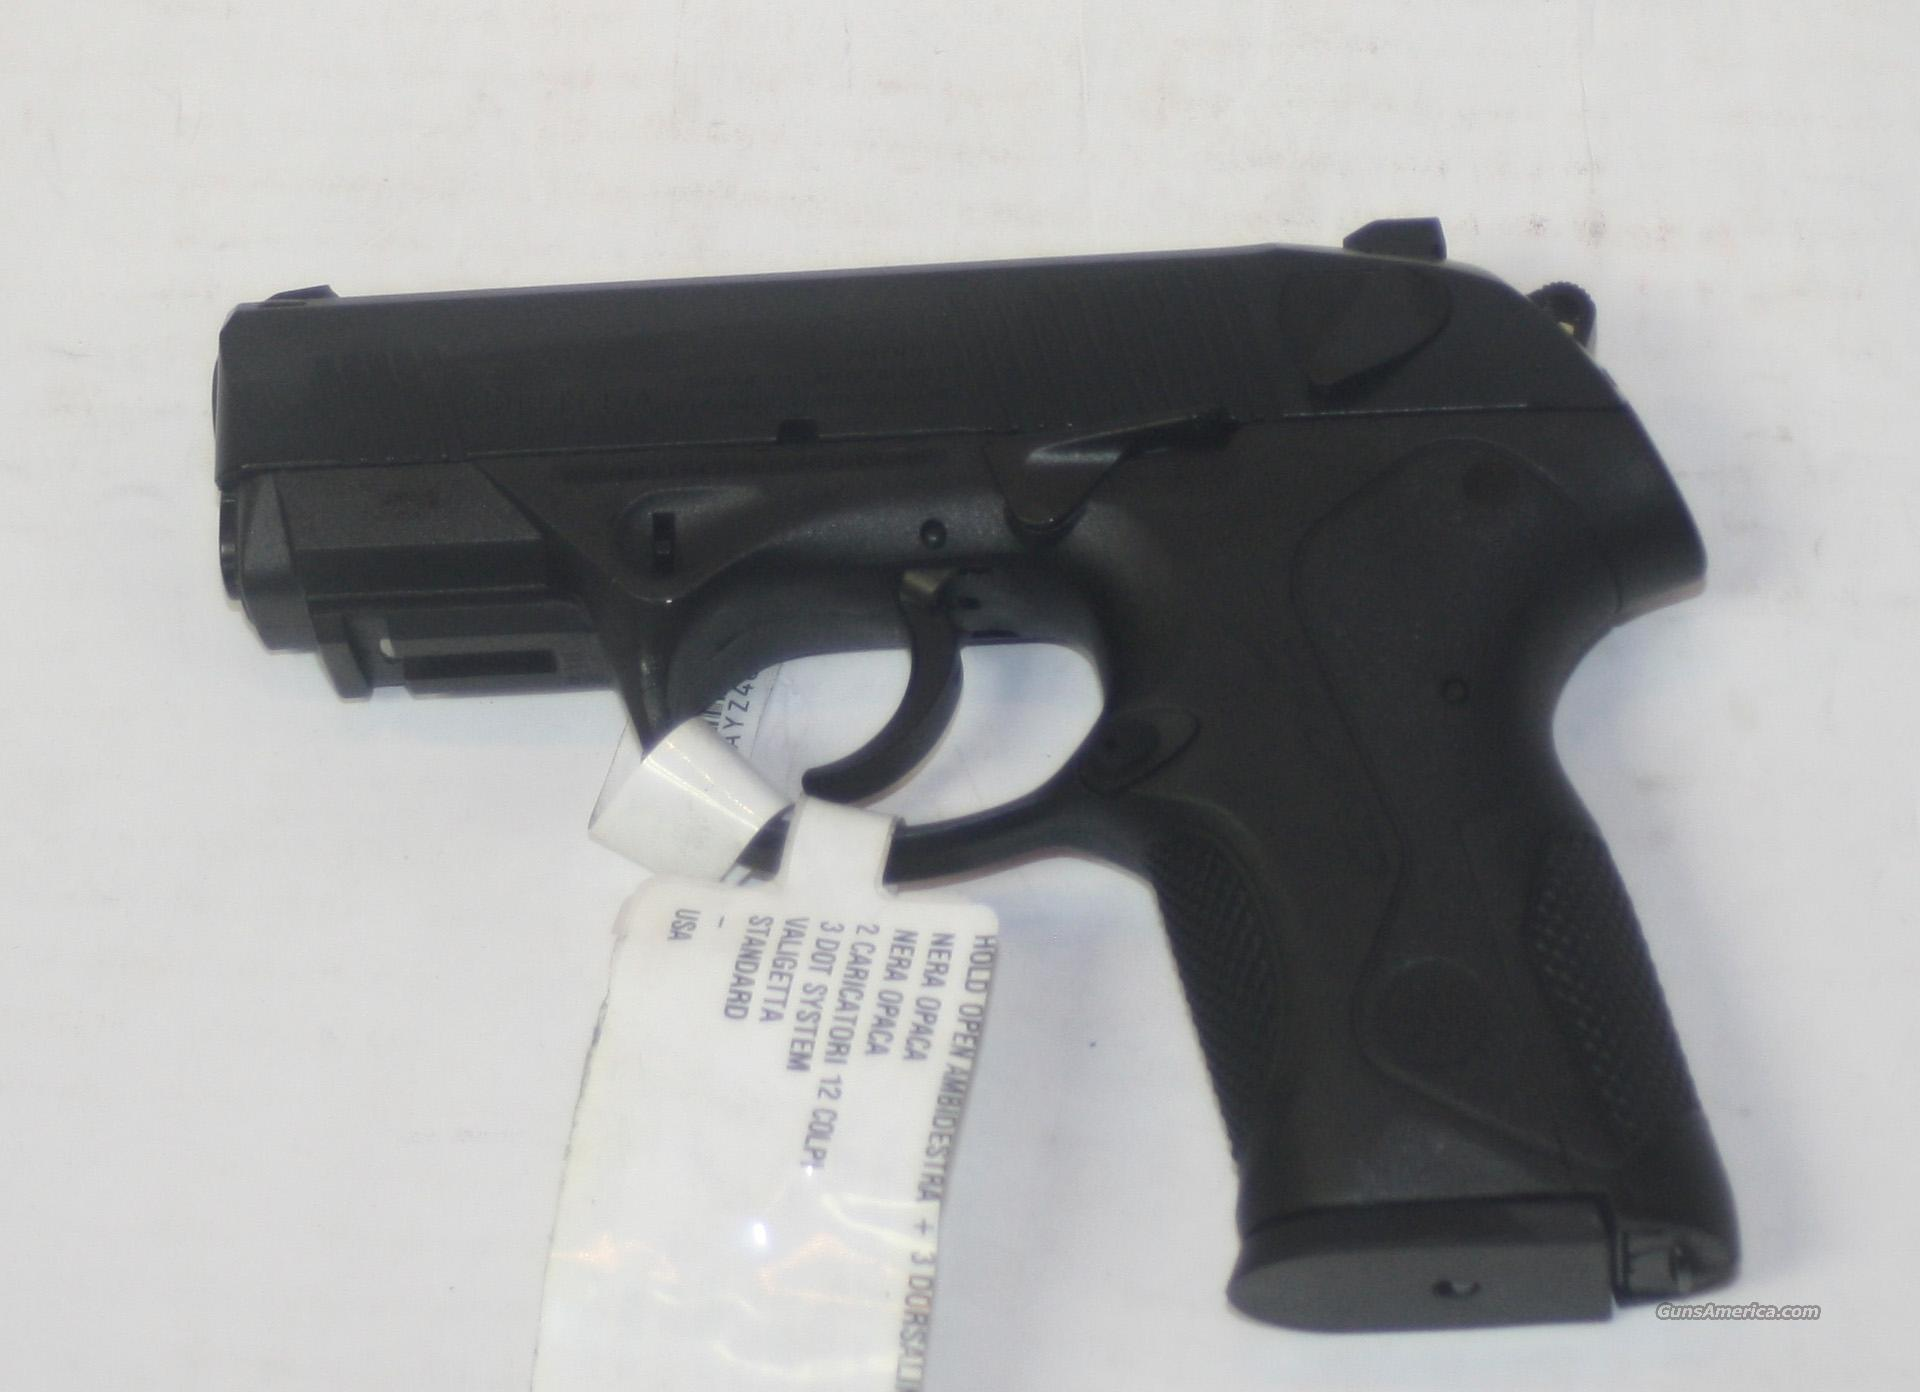 BERETTA PX4 F COMPACT 40 S&W WITH TWO 12 ROUND MAGAZINES NEW IN BOX  Guns > Pistols > Beretta Pistols > Polymer Frame